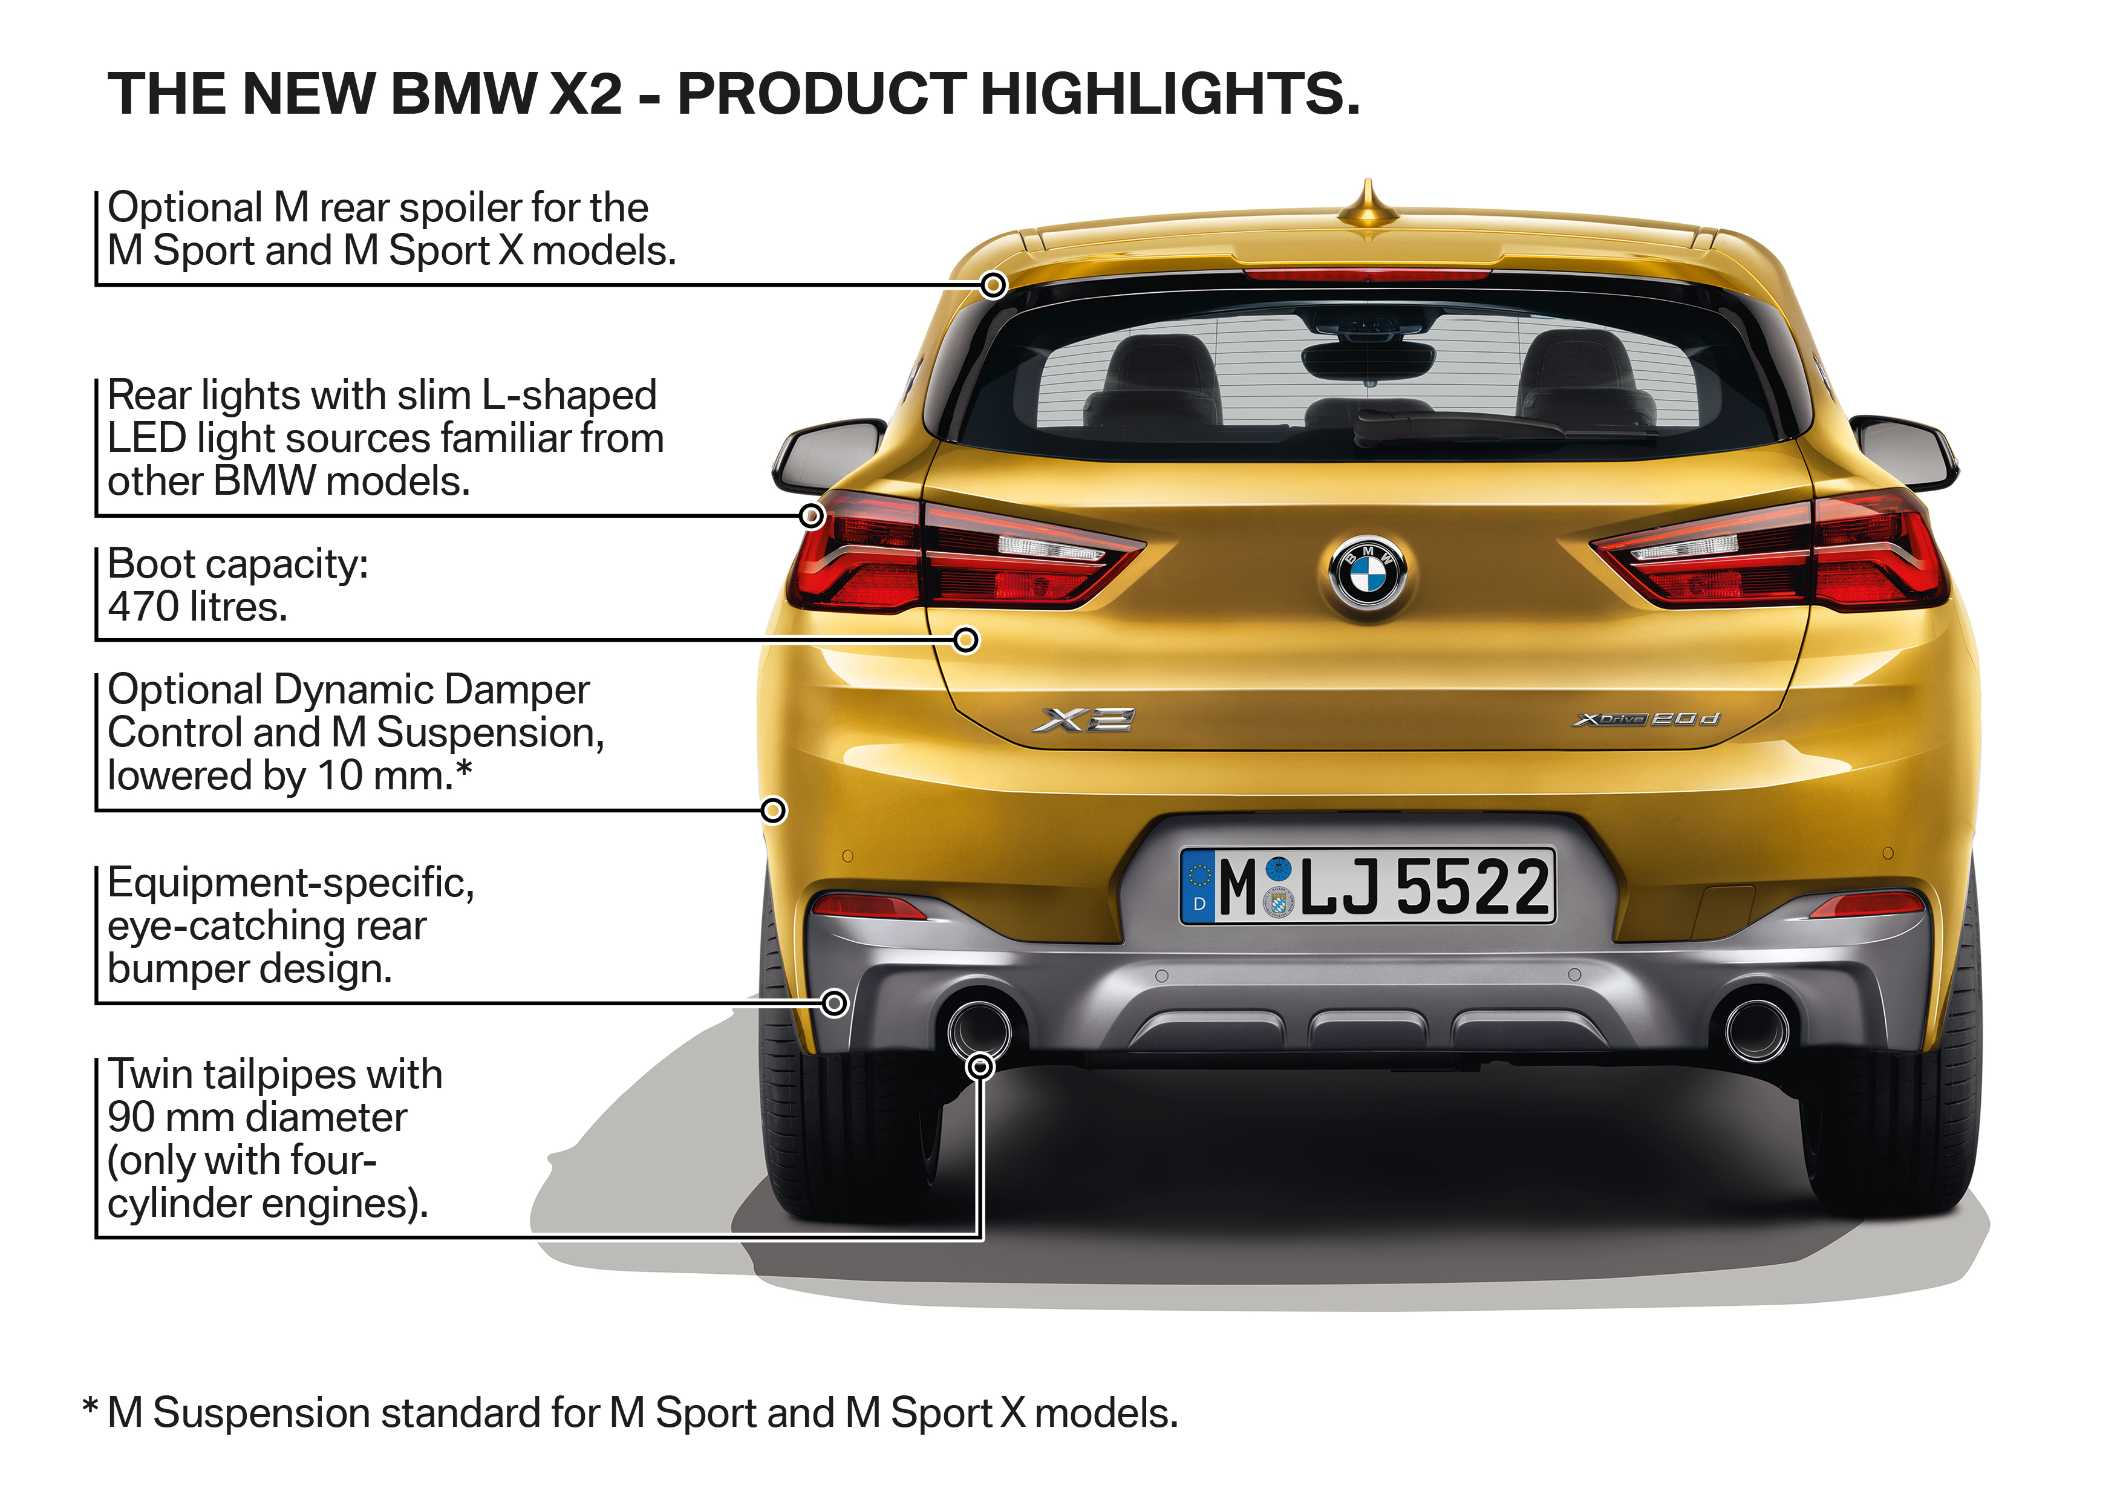 The brand new BMW X2 - Product Highlights (10/2017).